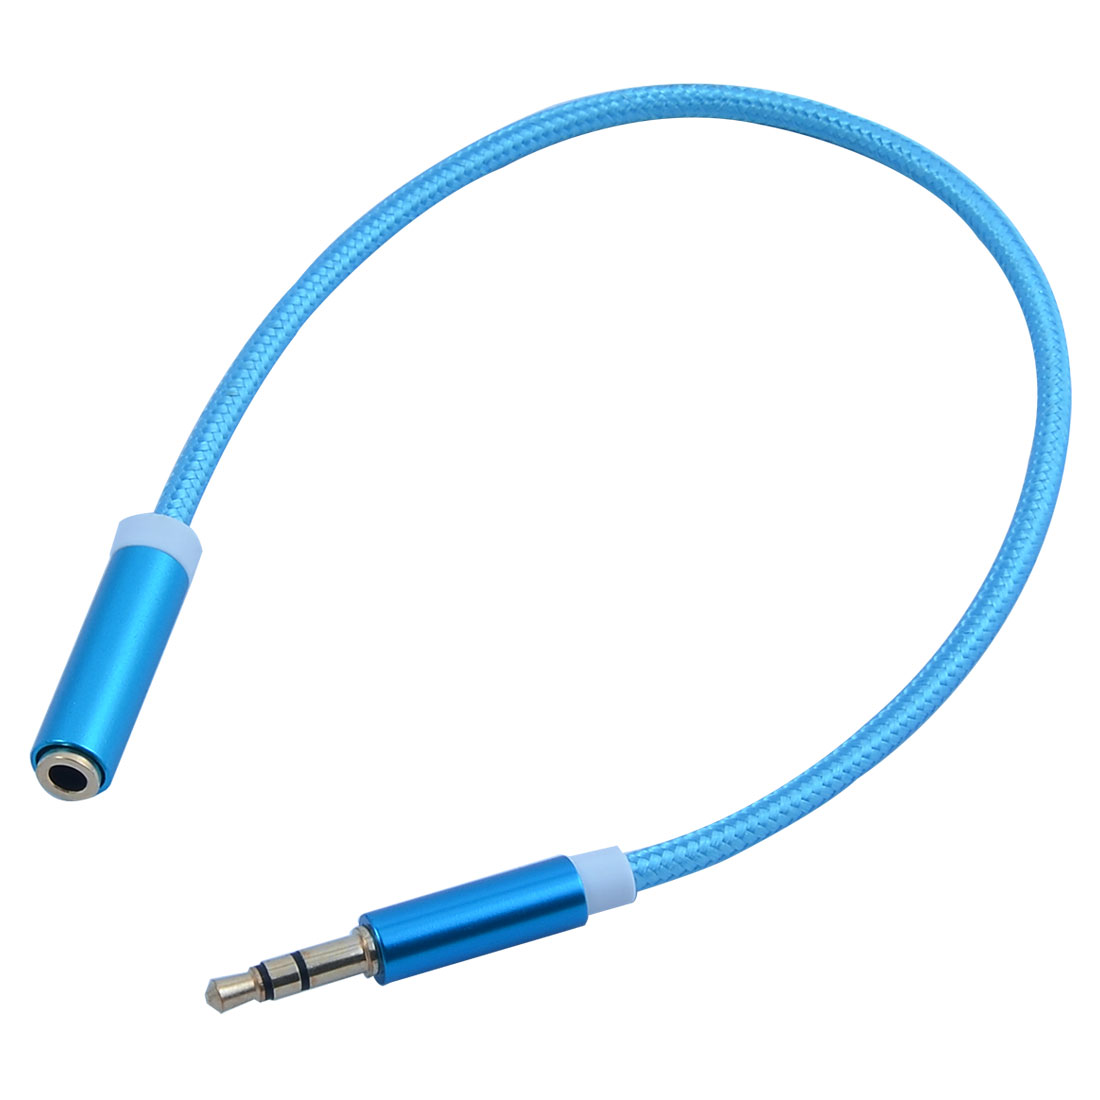 Universal 3.5mm Male to Female Nylon Audio Extension Cable Blue 250mm Long for Smartphone